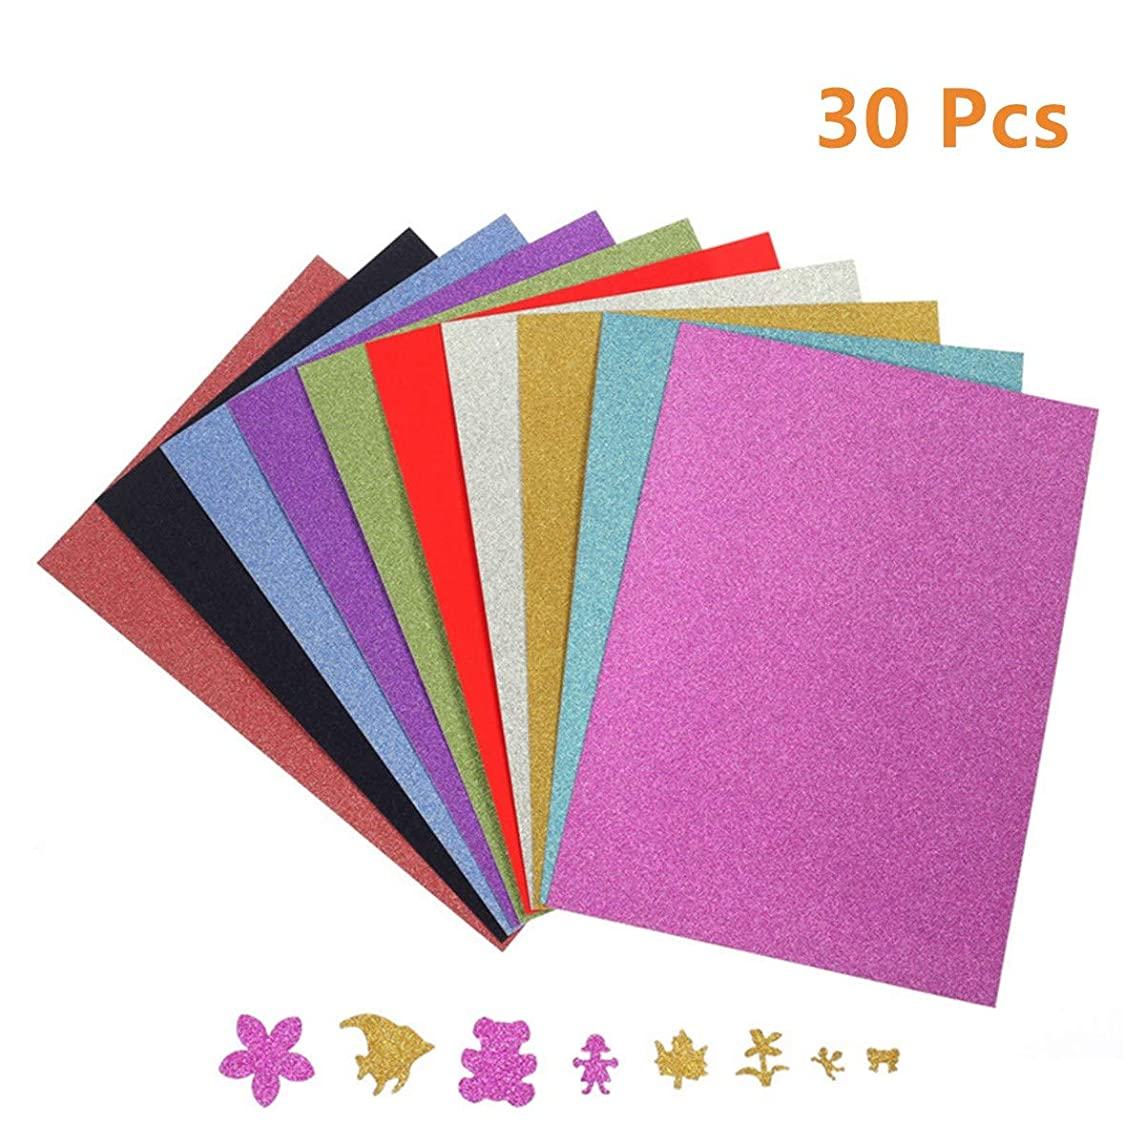 A4 Adhesive Glitter Paper, 30 Sheets Glitter Self-Adhesive Sticker Sticky Back Paper Craft Art Sparkling Sign Gemstone Metallic Color for Children's Craft Cutters Art